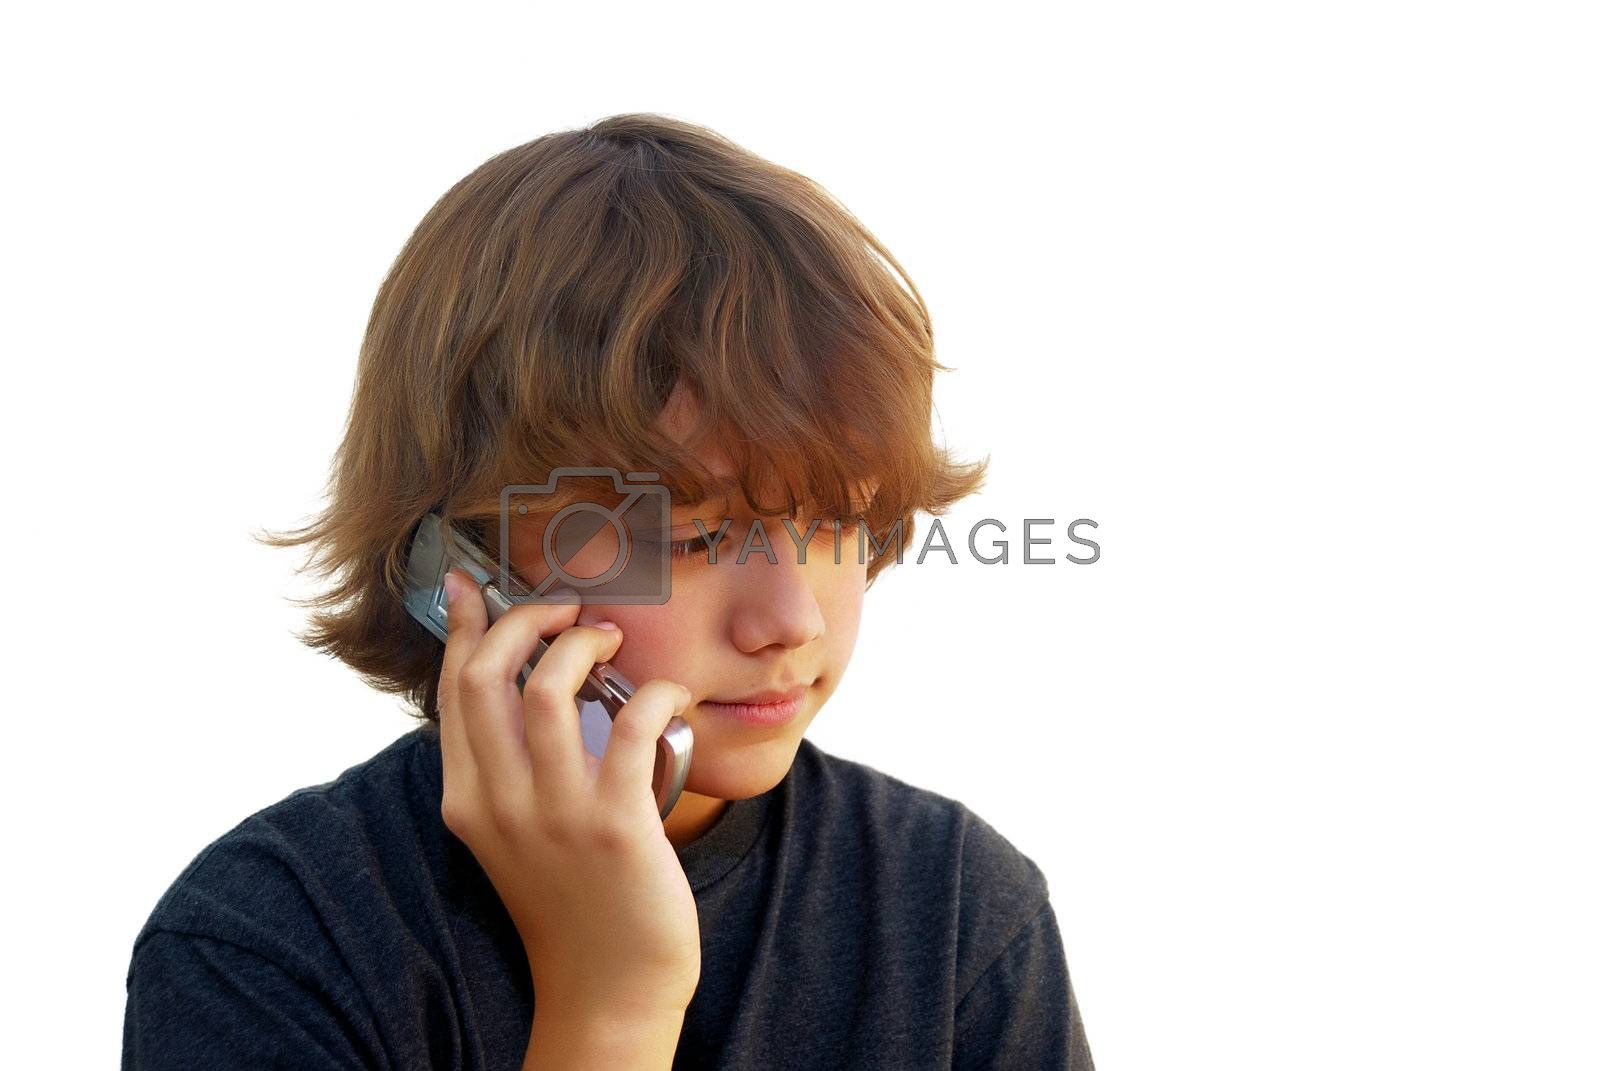 Teen boy talking on mobile phone isolated on white background.